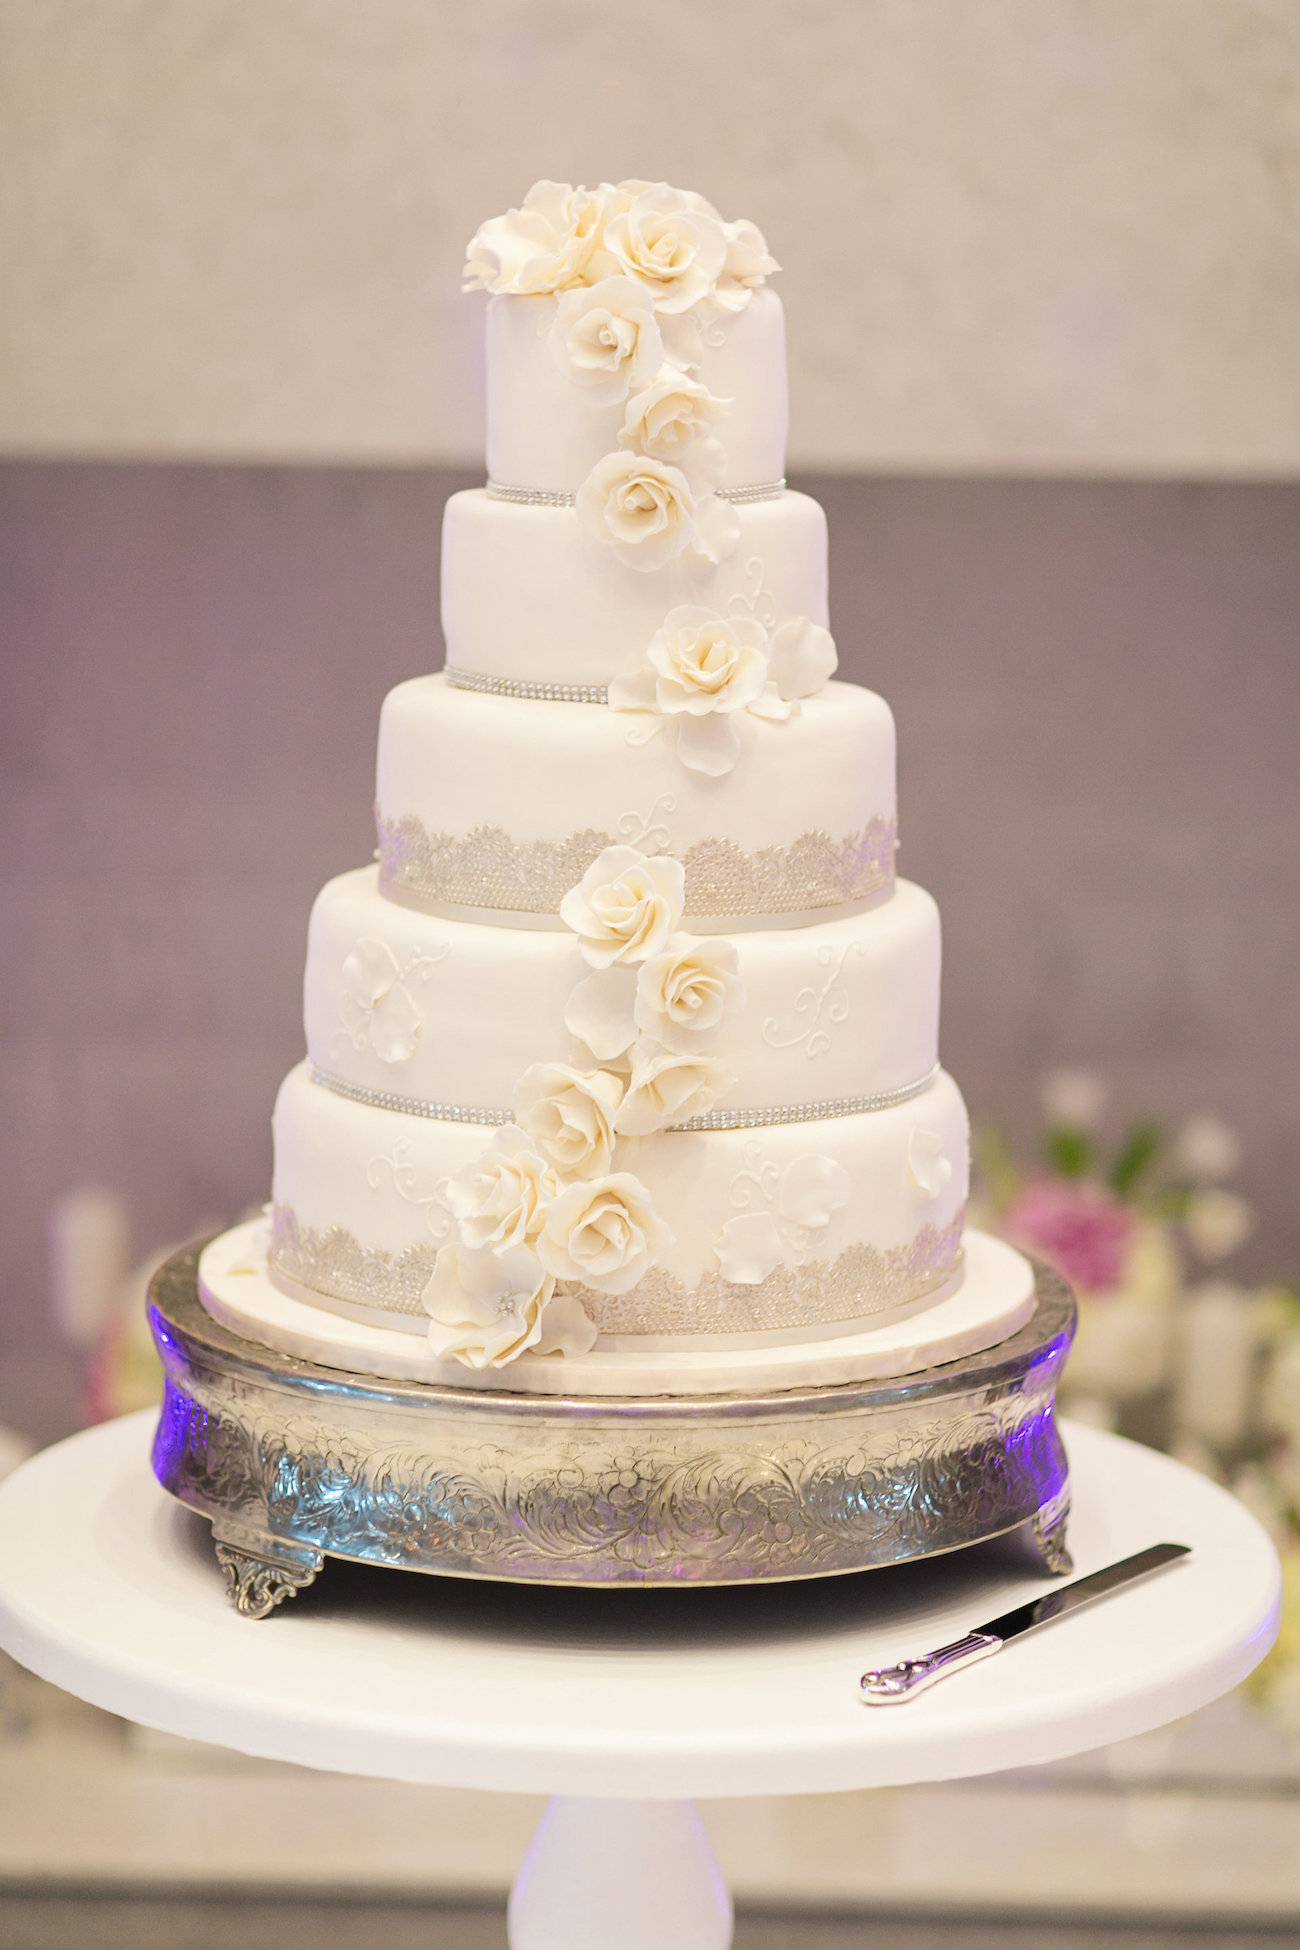 Classic Wedding Cake | Credit: Tyme Photography & Wedding Concepts